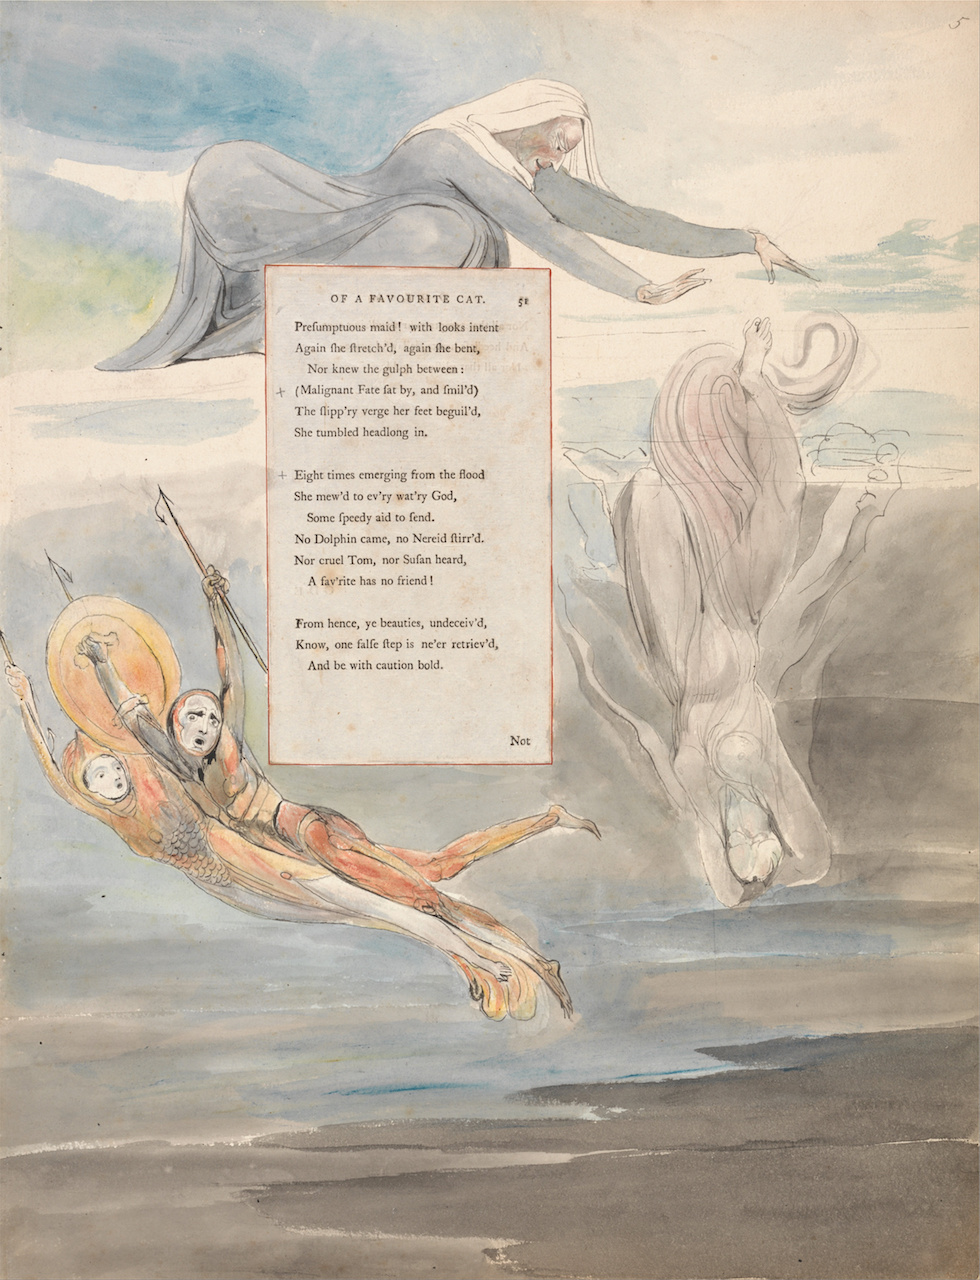 """William Blake, illustration for """"Ode on the Death of a Favourite Cat,"""" in 'The Poems of Thomas Gray (1797-98), watercolor with pen and black ink and graphite on paper with inlaid letterpress page (courtesy Yale Center for British Art, Paul Mellon Collection/Wikimedia)"""